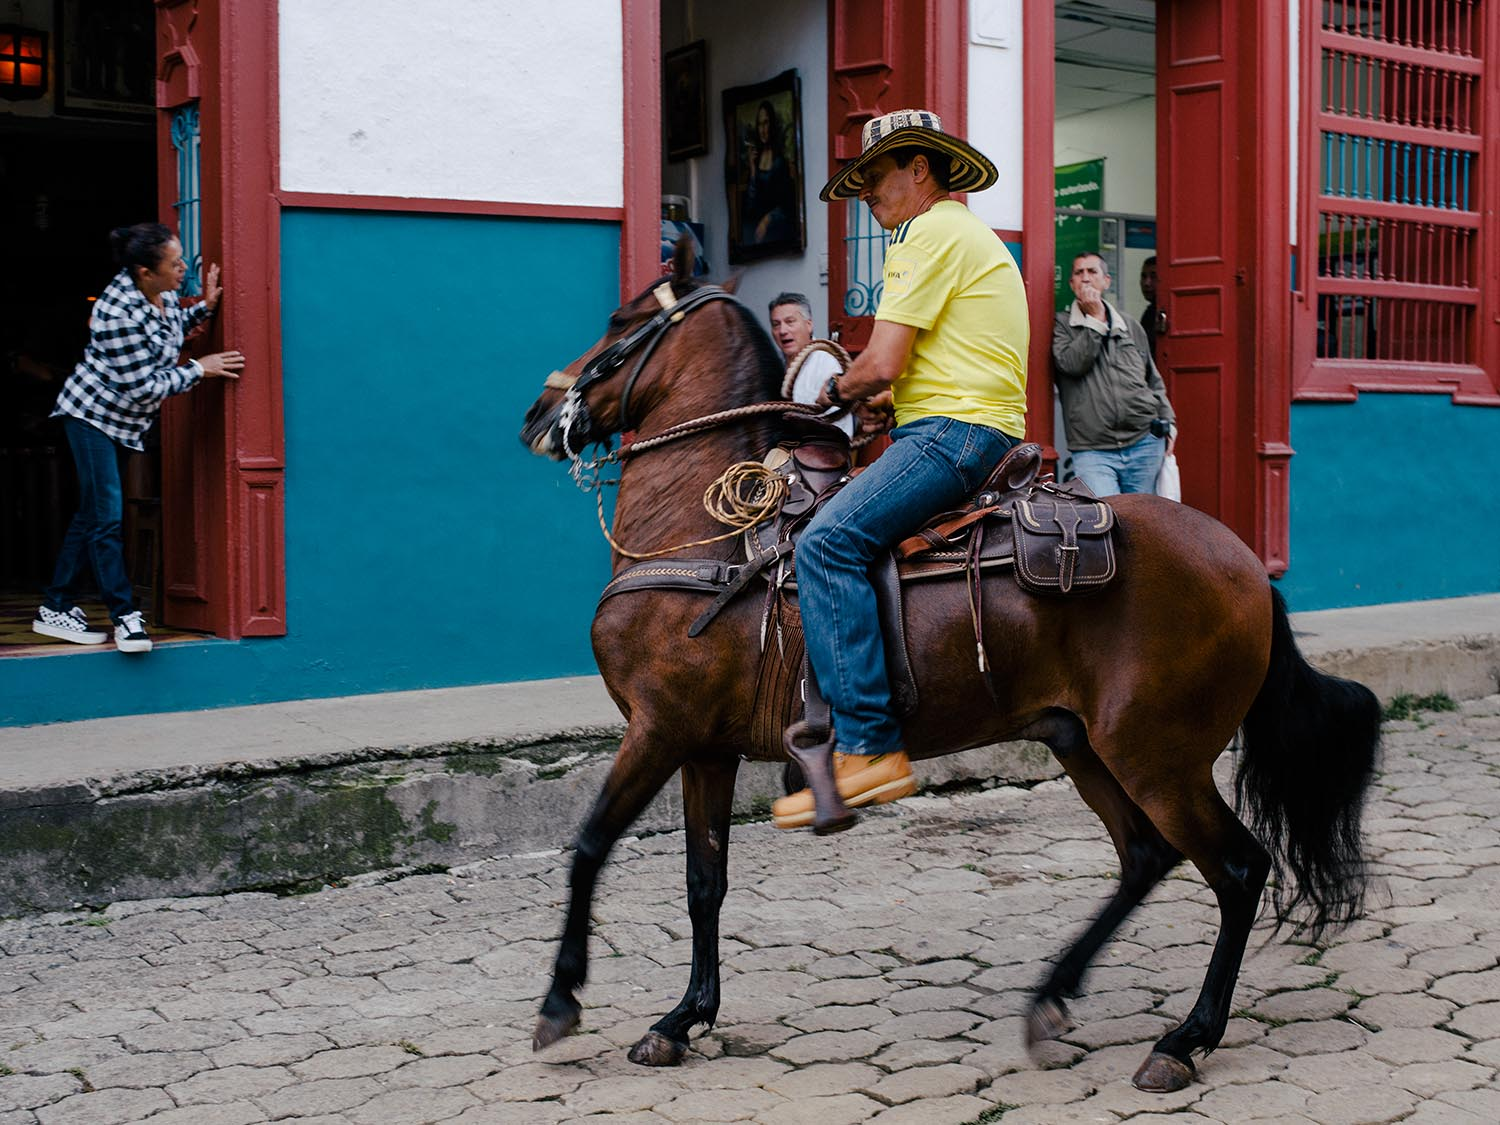 Both towns are all about horses, cowboy hats and relaxing…